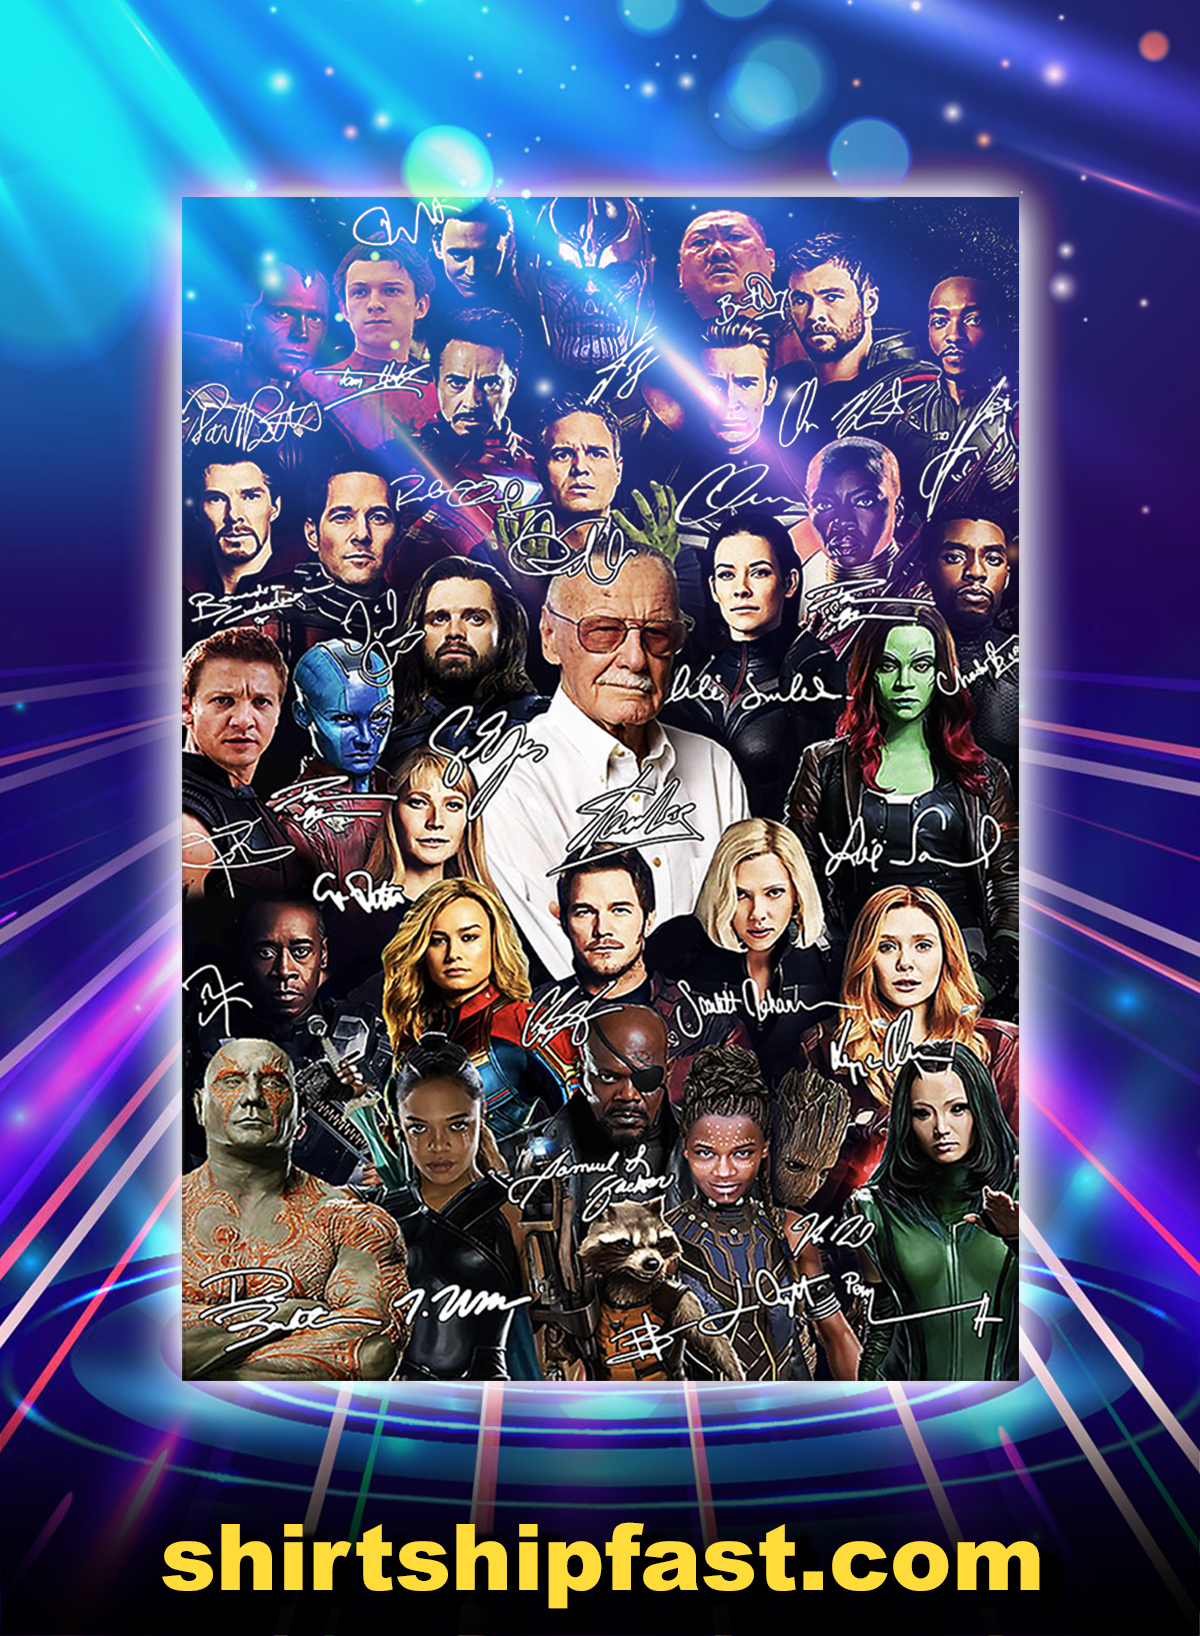 Stan lee avengers movies all actors signature poster - A1